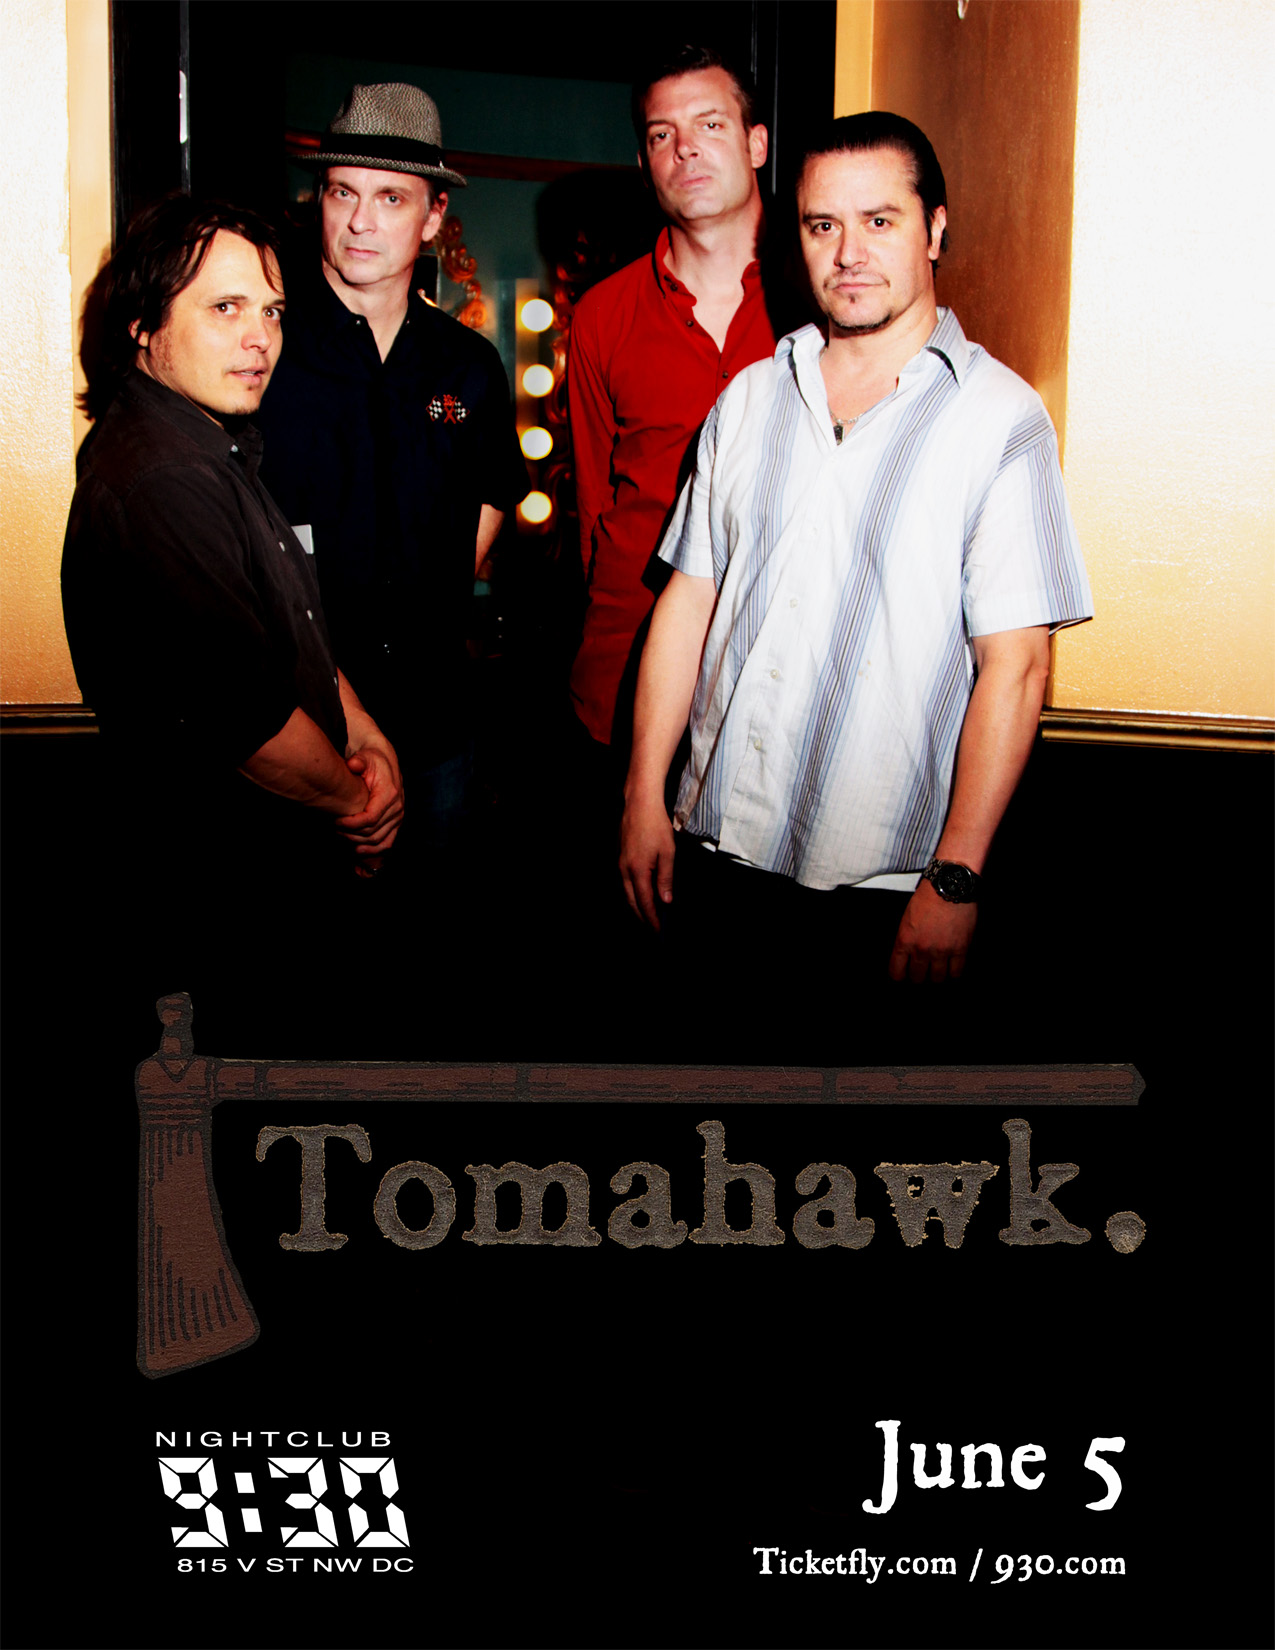 Upcoming Shows and Tomahawk Giveaway!